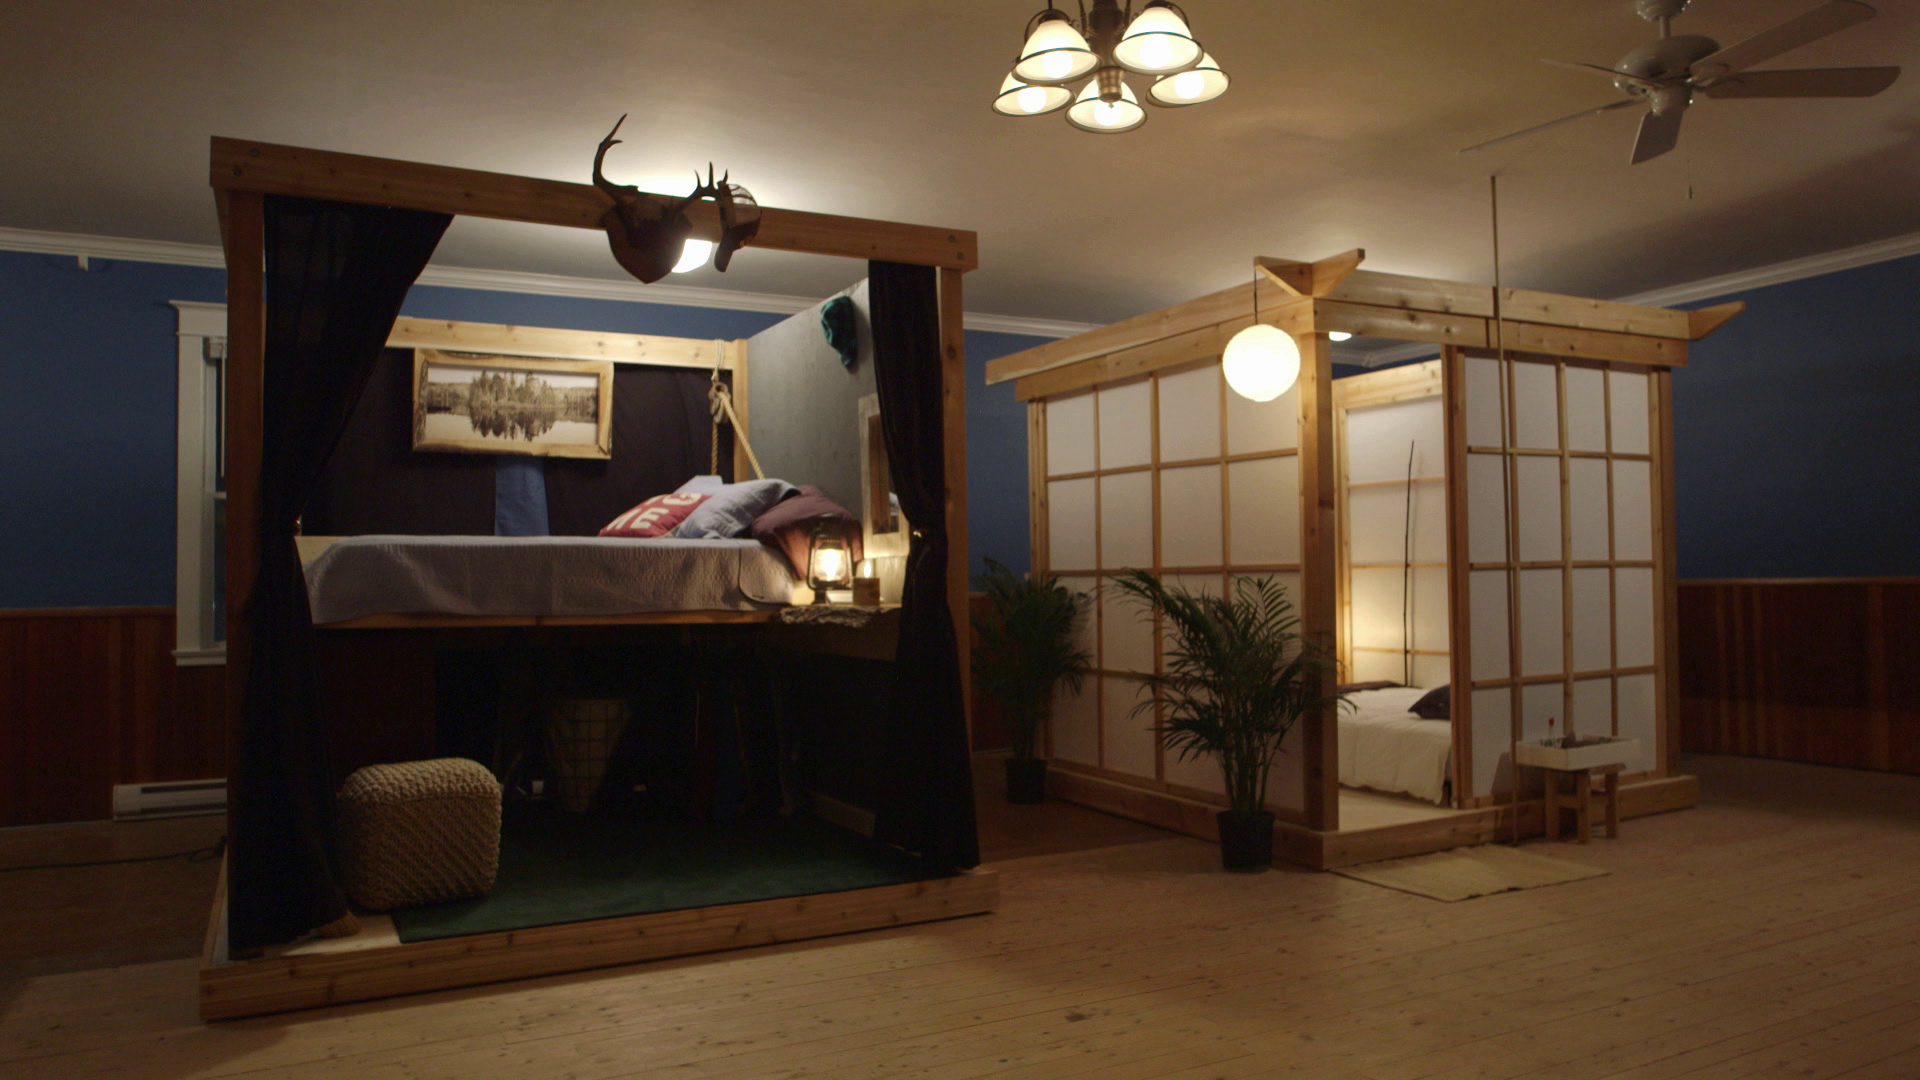 Episodes - Brojects: In The House — brojects for Diy Sleep Lamp  270bof